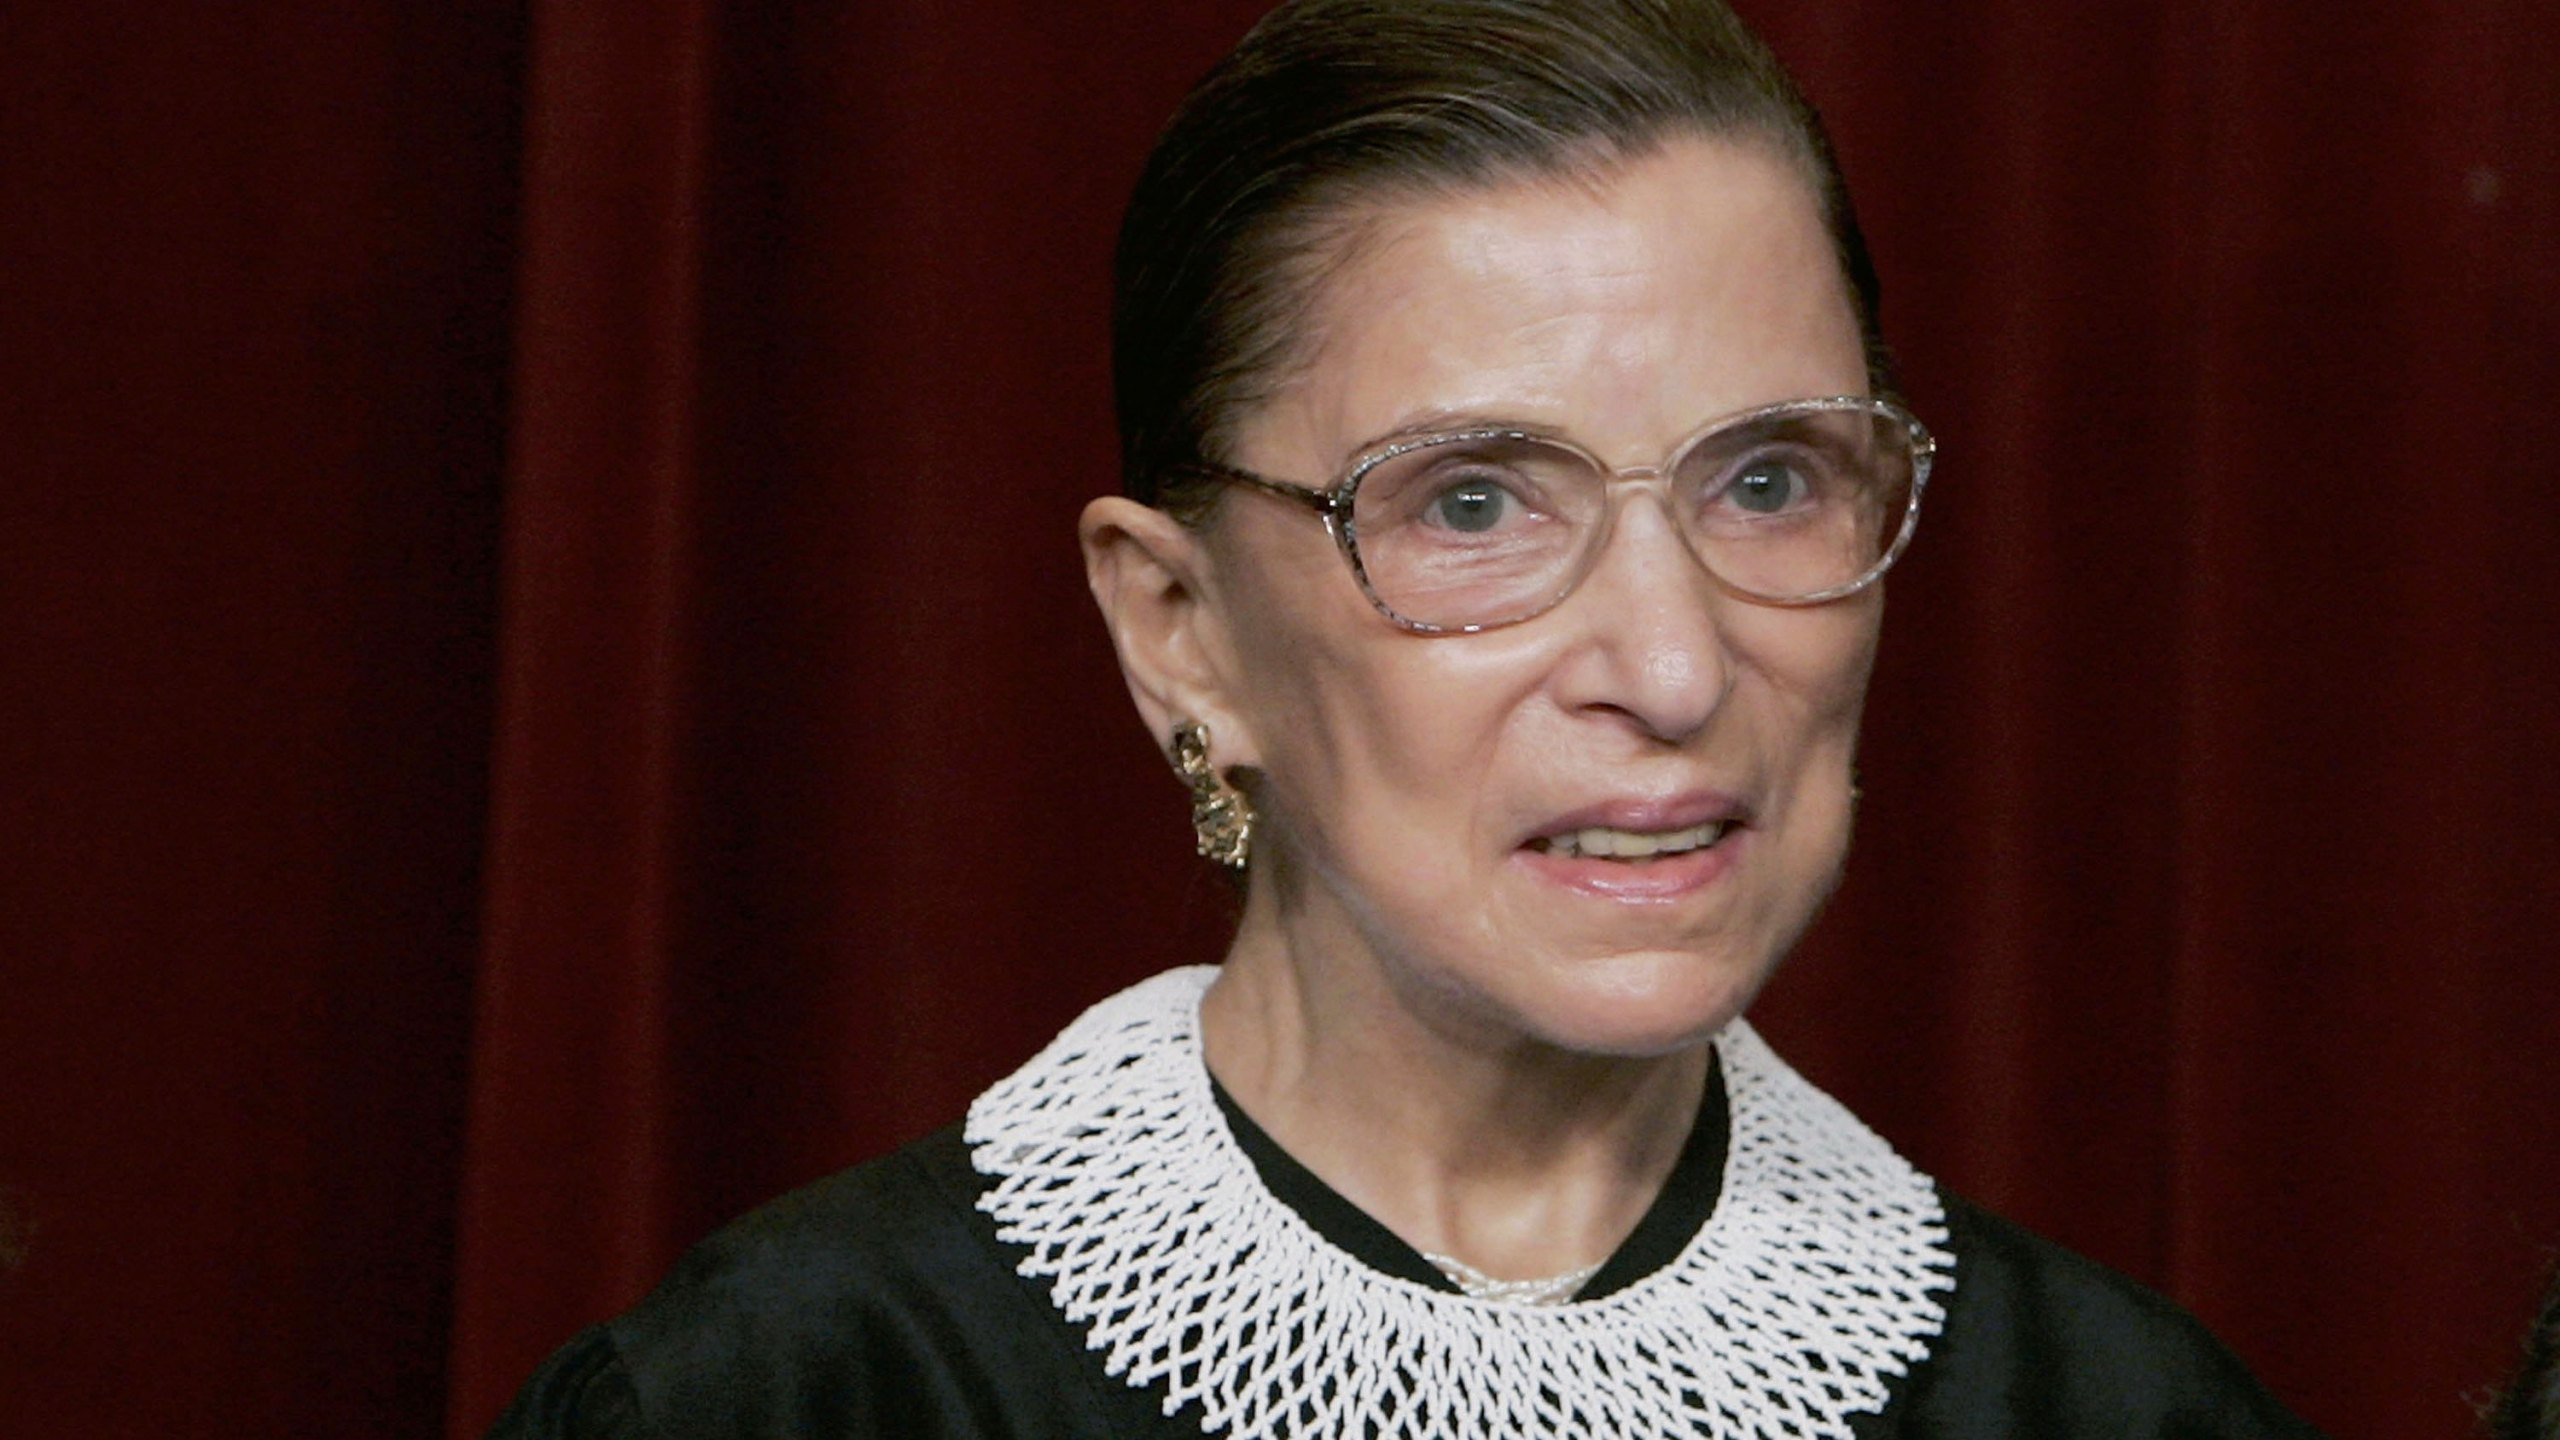 Supreme Court Justice Ruth Bader Ginsburg smiles during a photo session with photographers at the U.S. Supreme Court on March 3, 2006. (Mark Wilson / Getty Images)